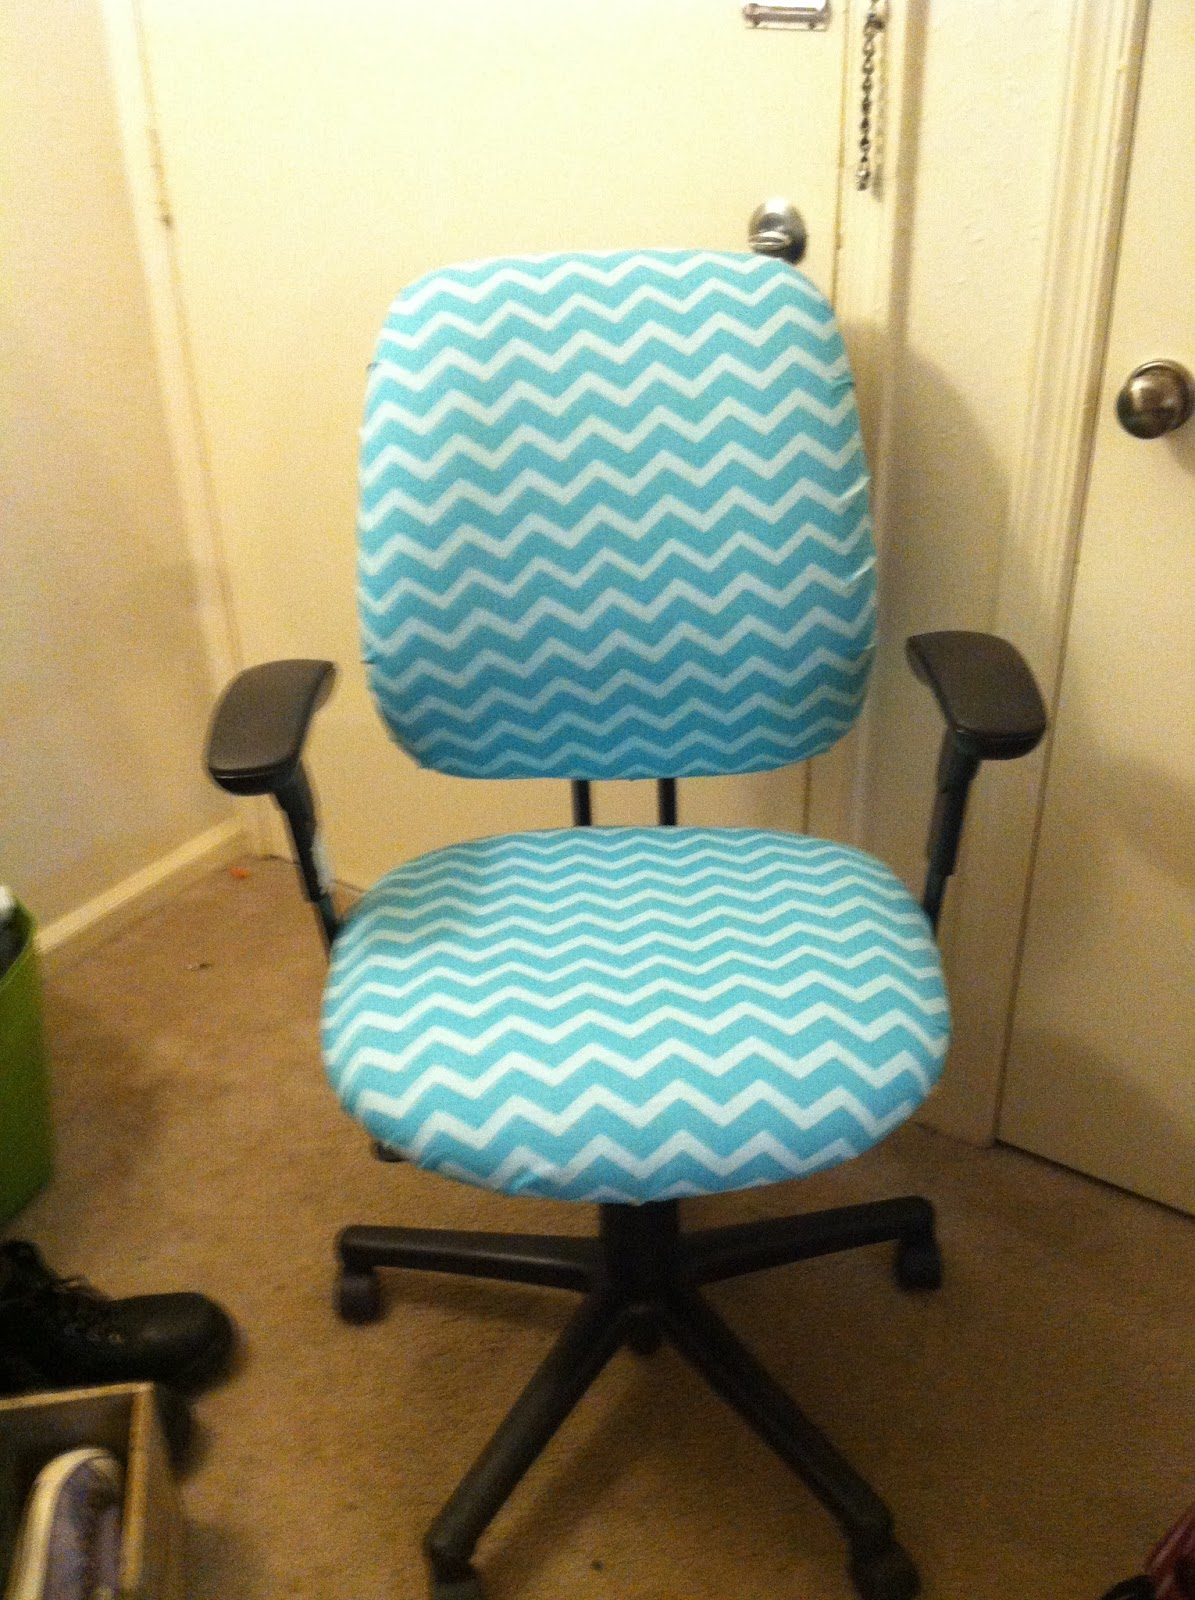 After Lovely Chevron Chair Its going to look perfect at my guided reading table